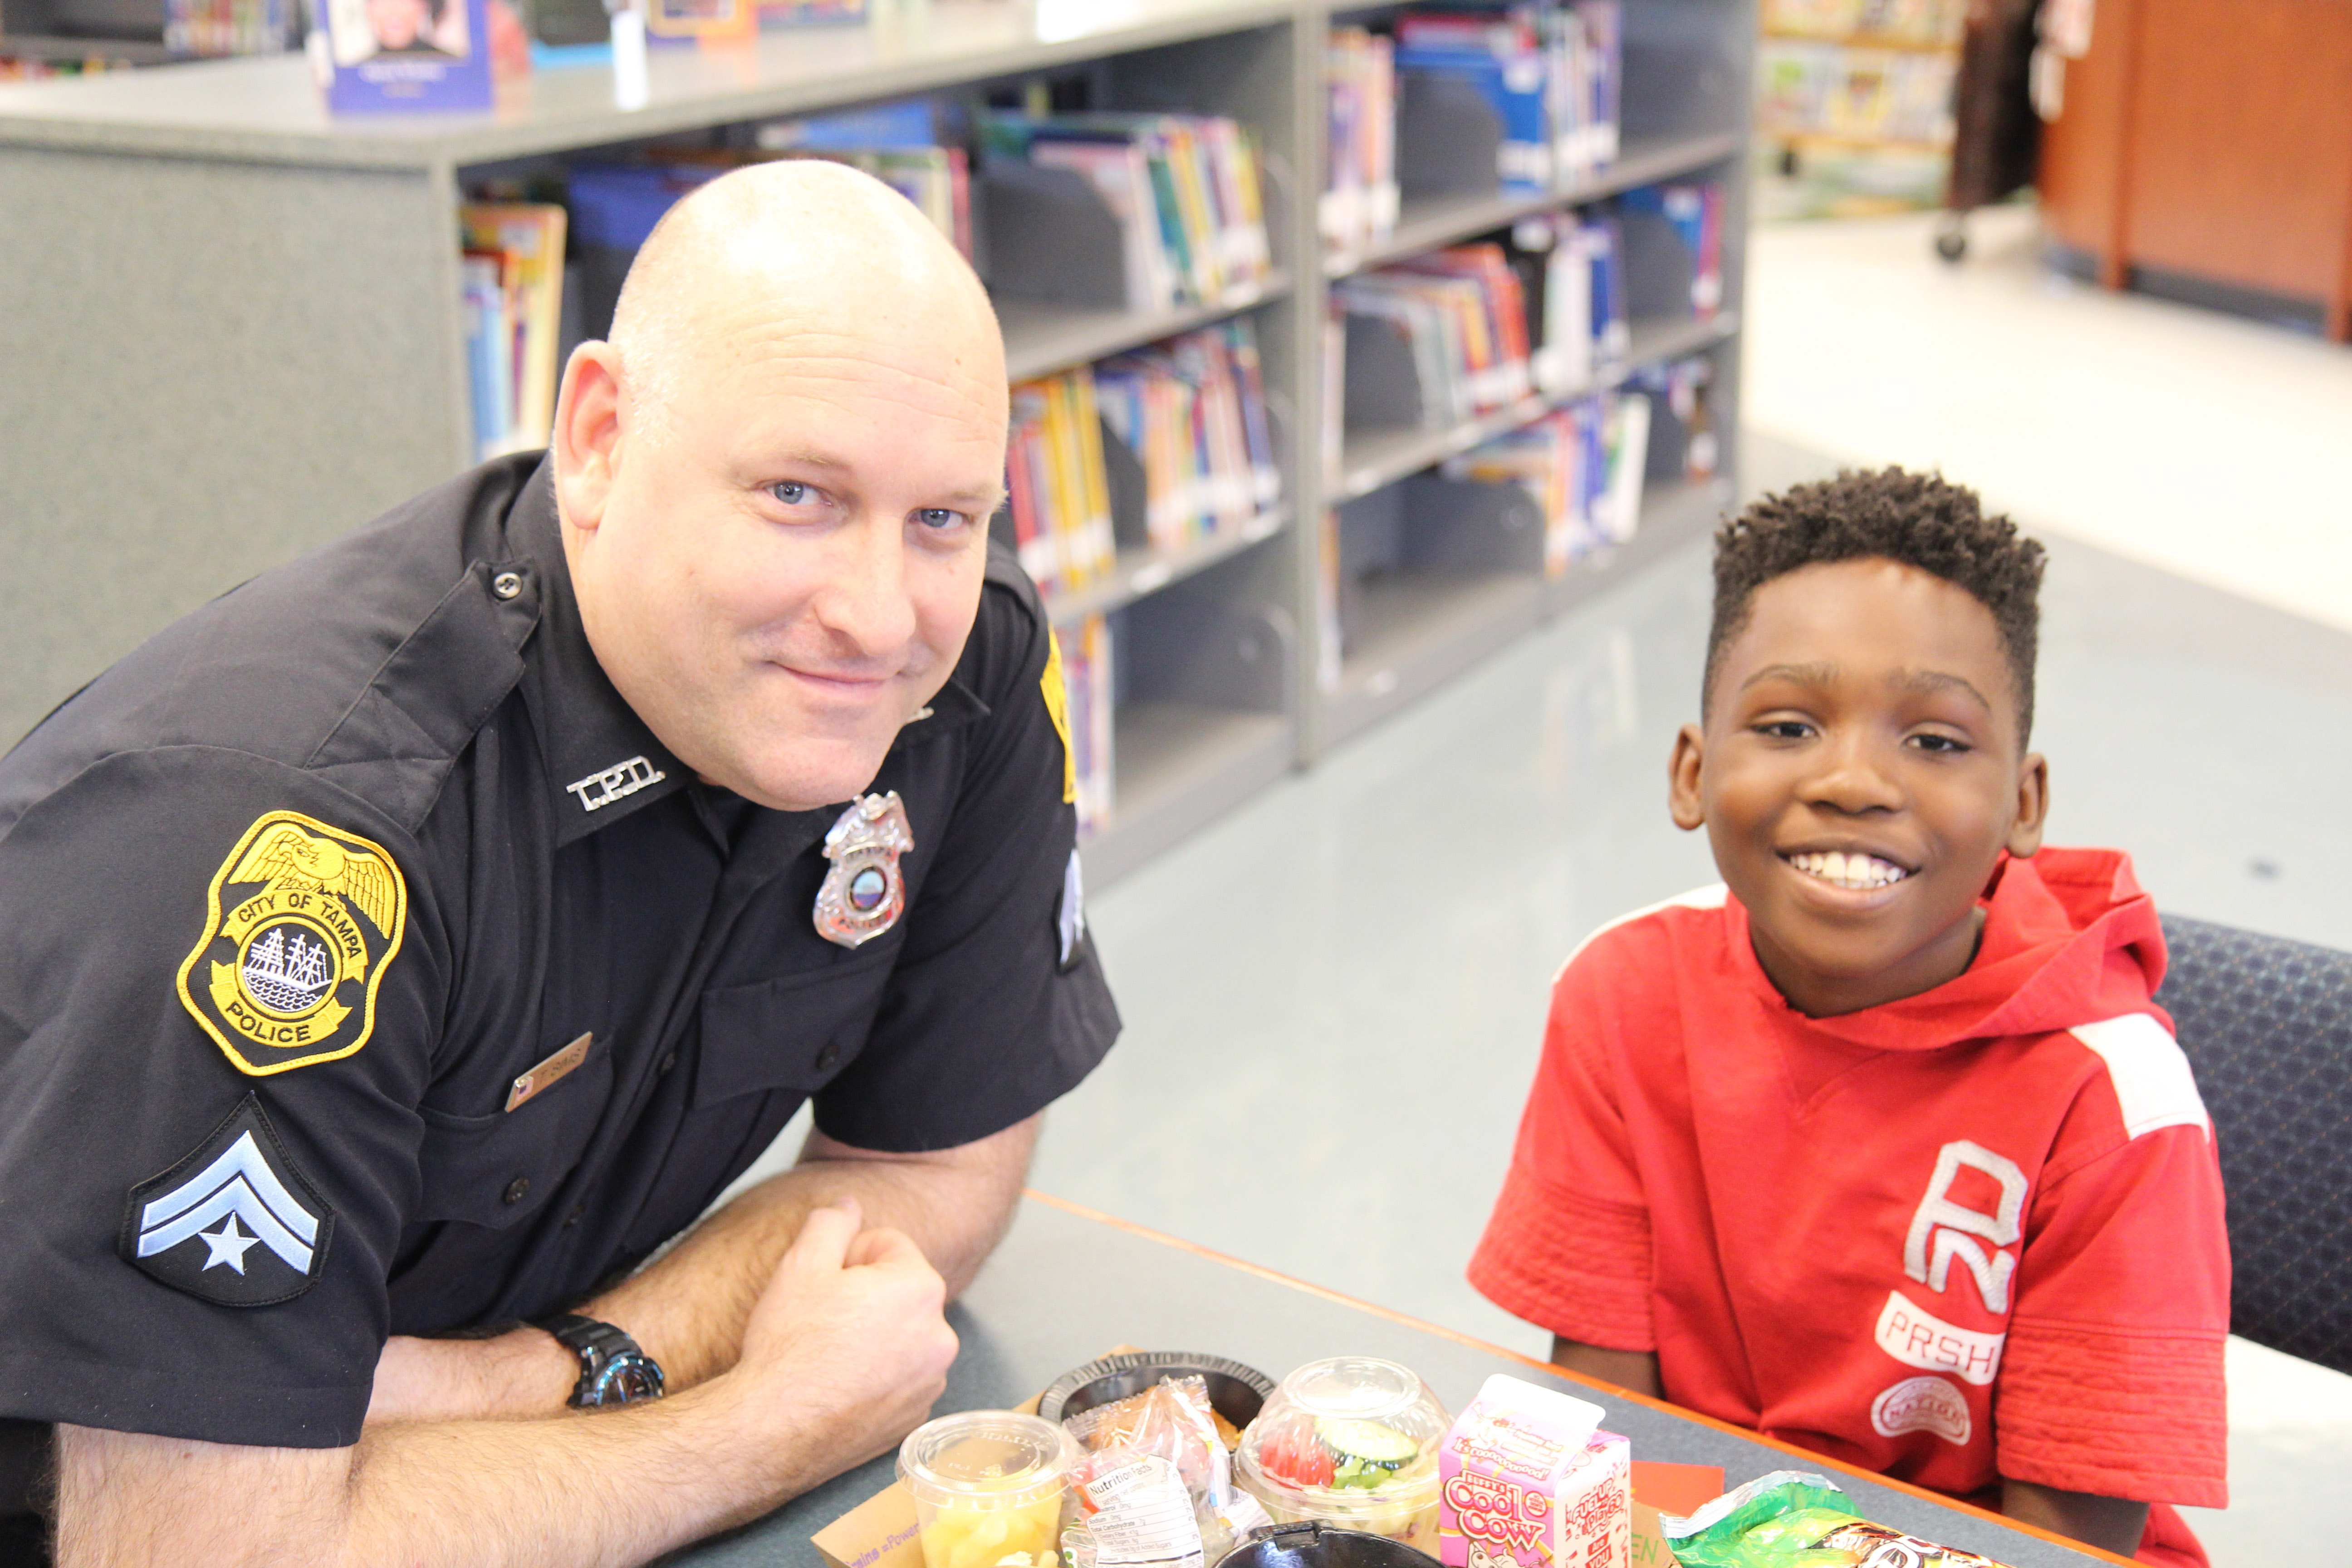 Bigs in Blue Summit Shows Positive Impact Law Enforcement Personnel are having on Kids in our Community